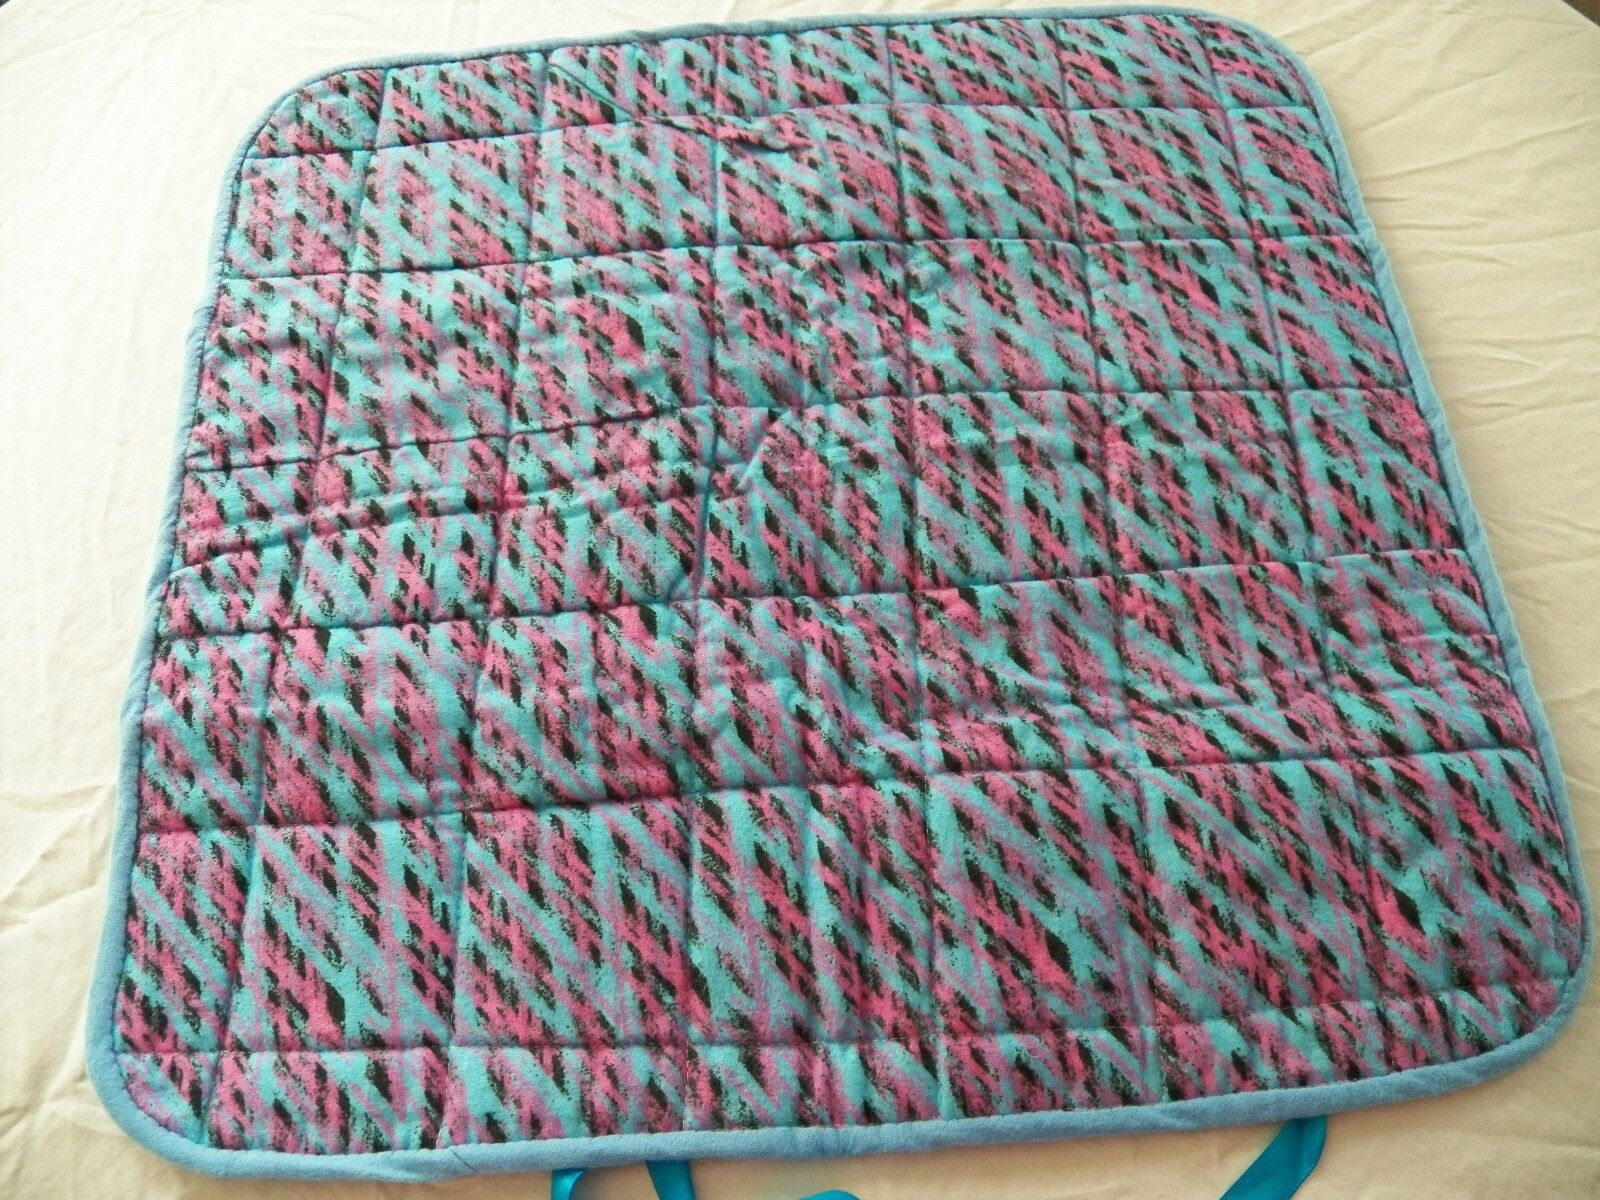 BABY CHANGING PAD Portable Diaper Travel Mat Cotton Washable Padded Handmade NEW 8